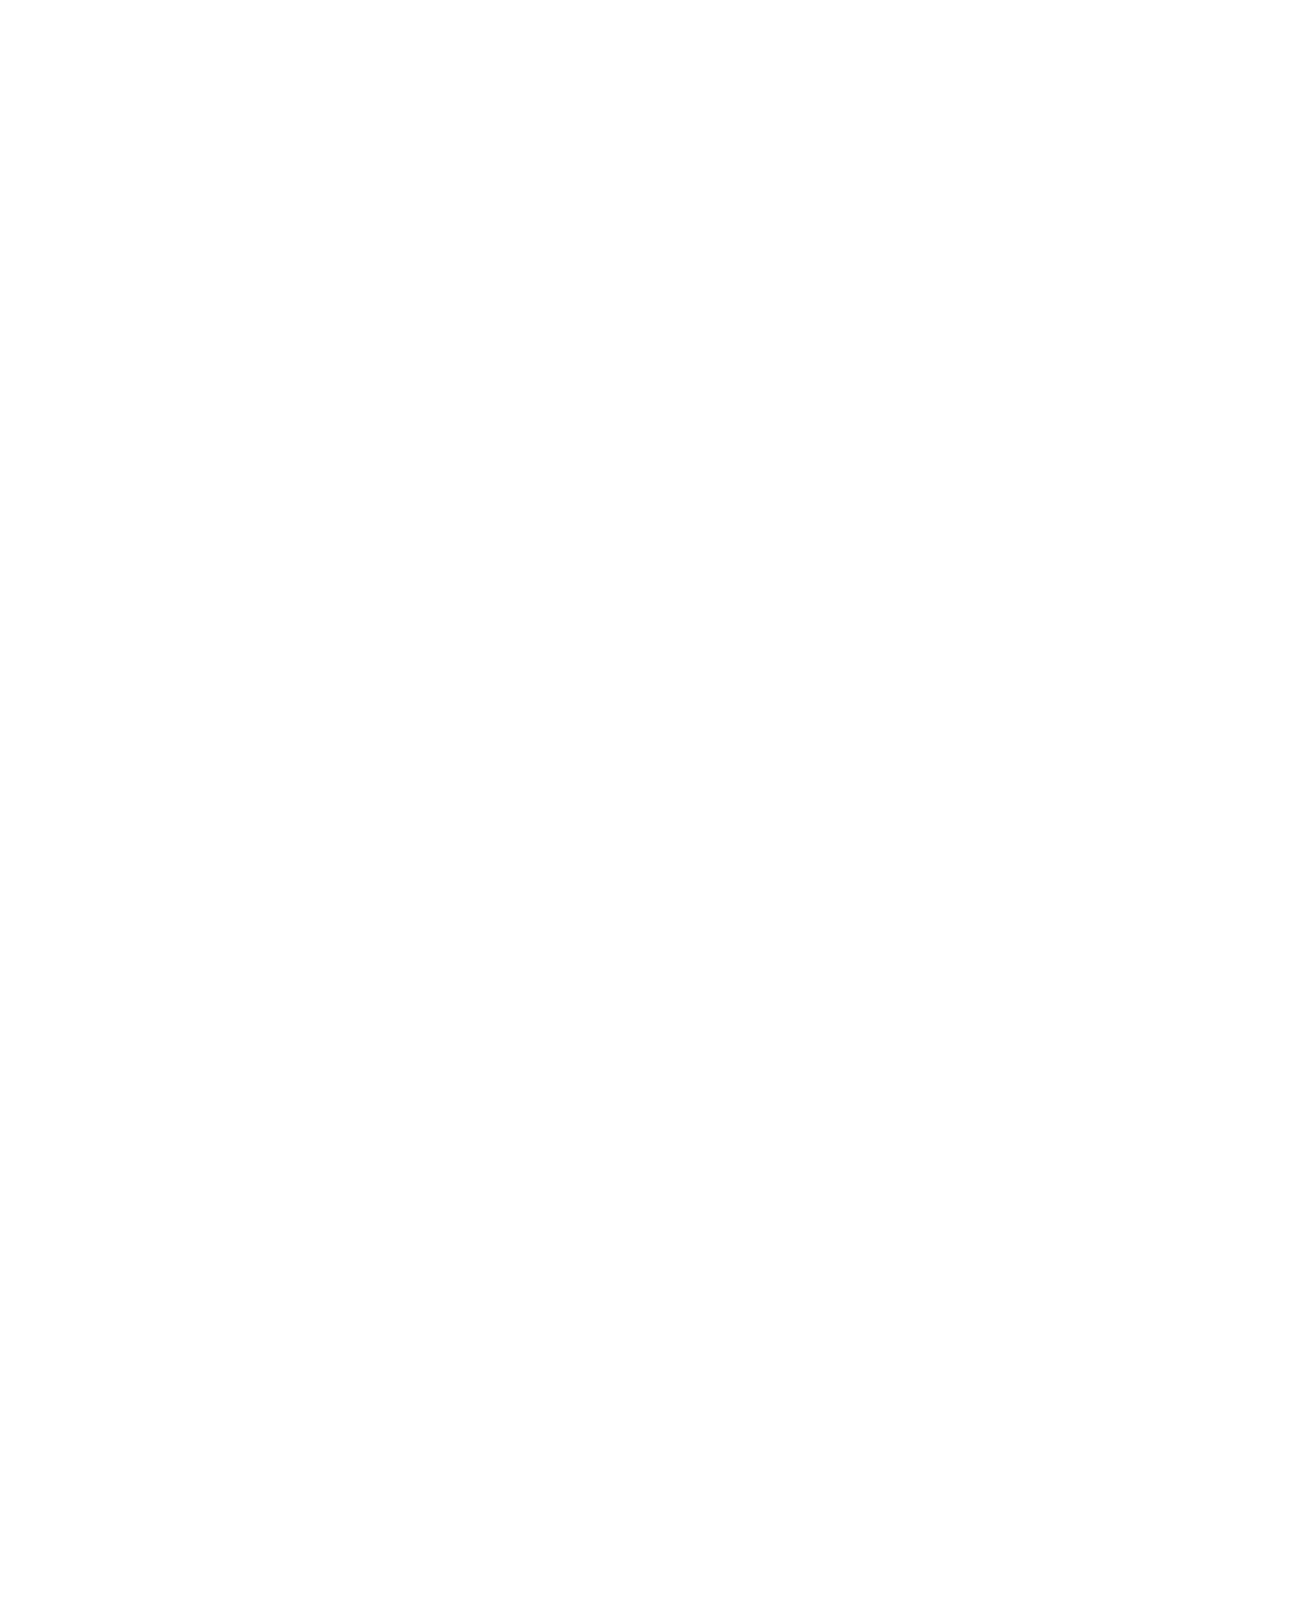 Carceral State Project